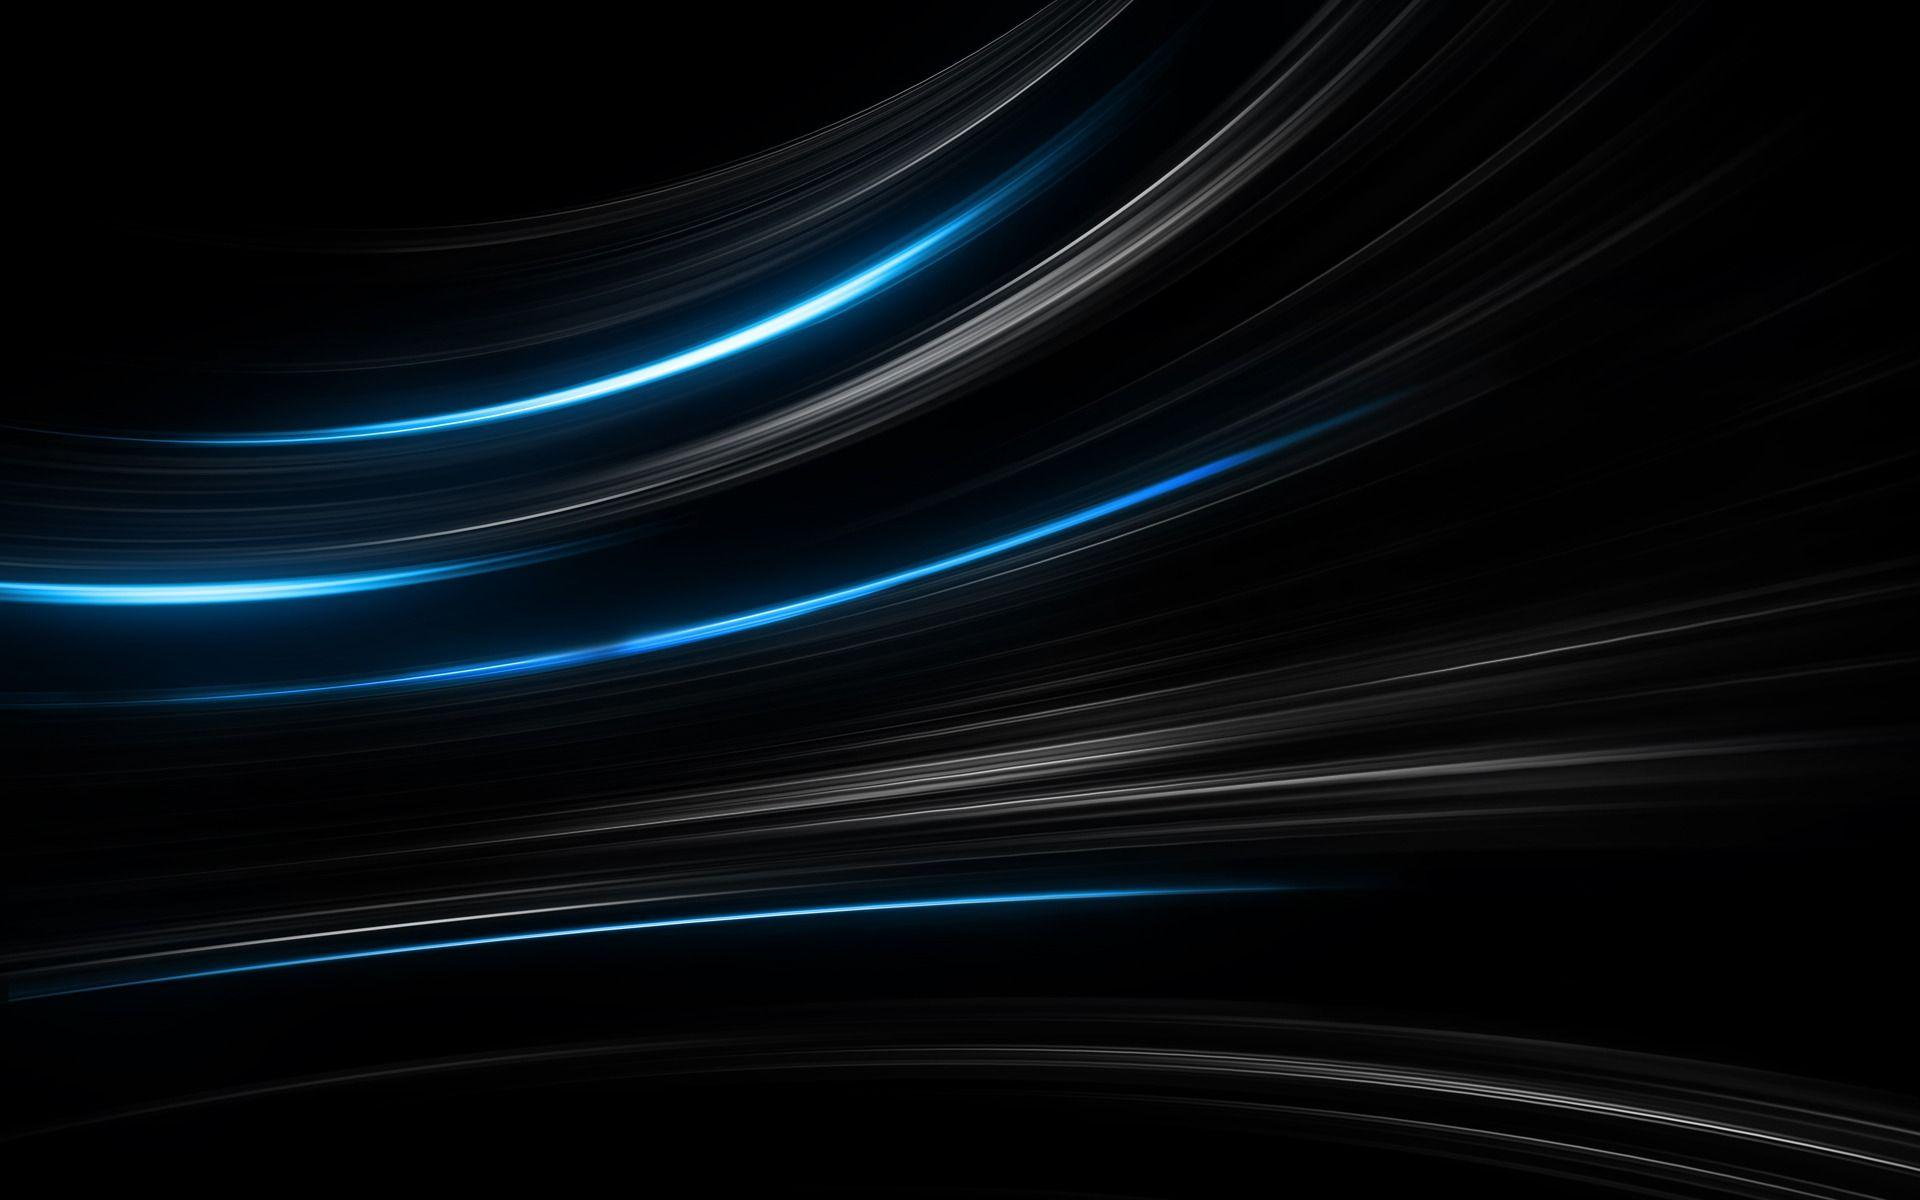 Black And Blue Wallpapers Wallpaper Cave